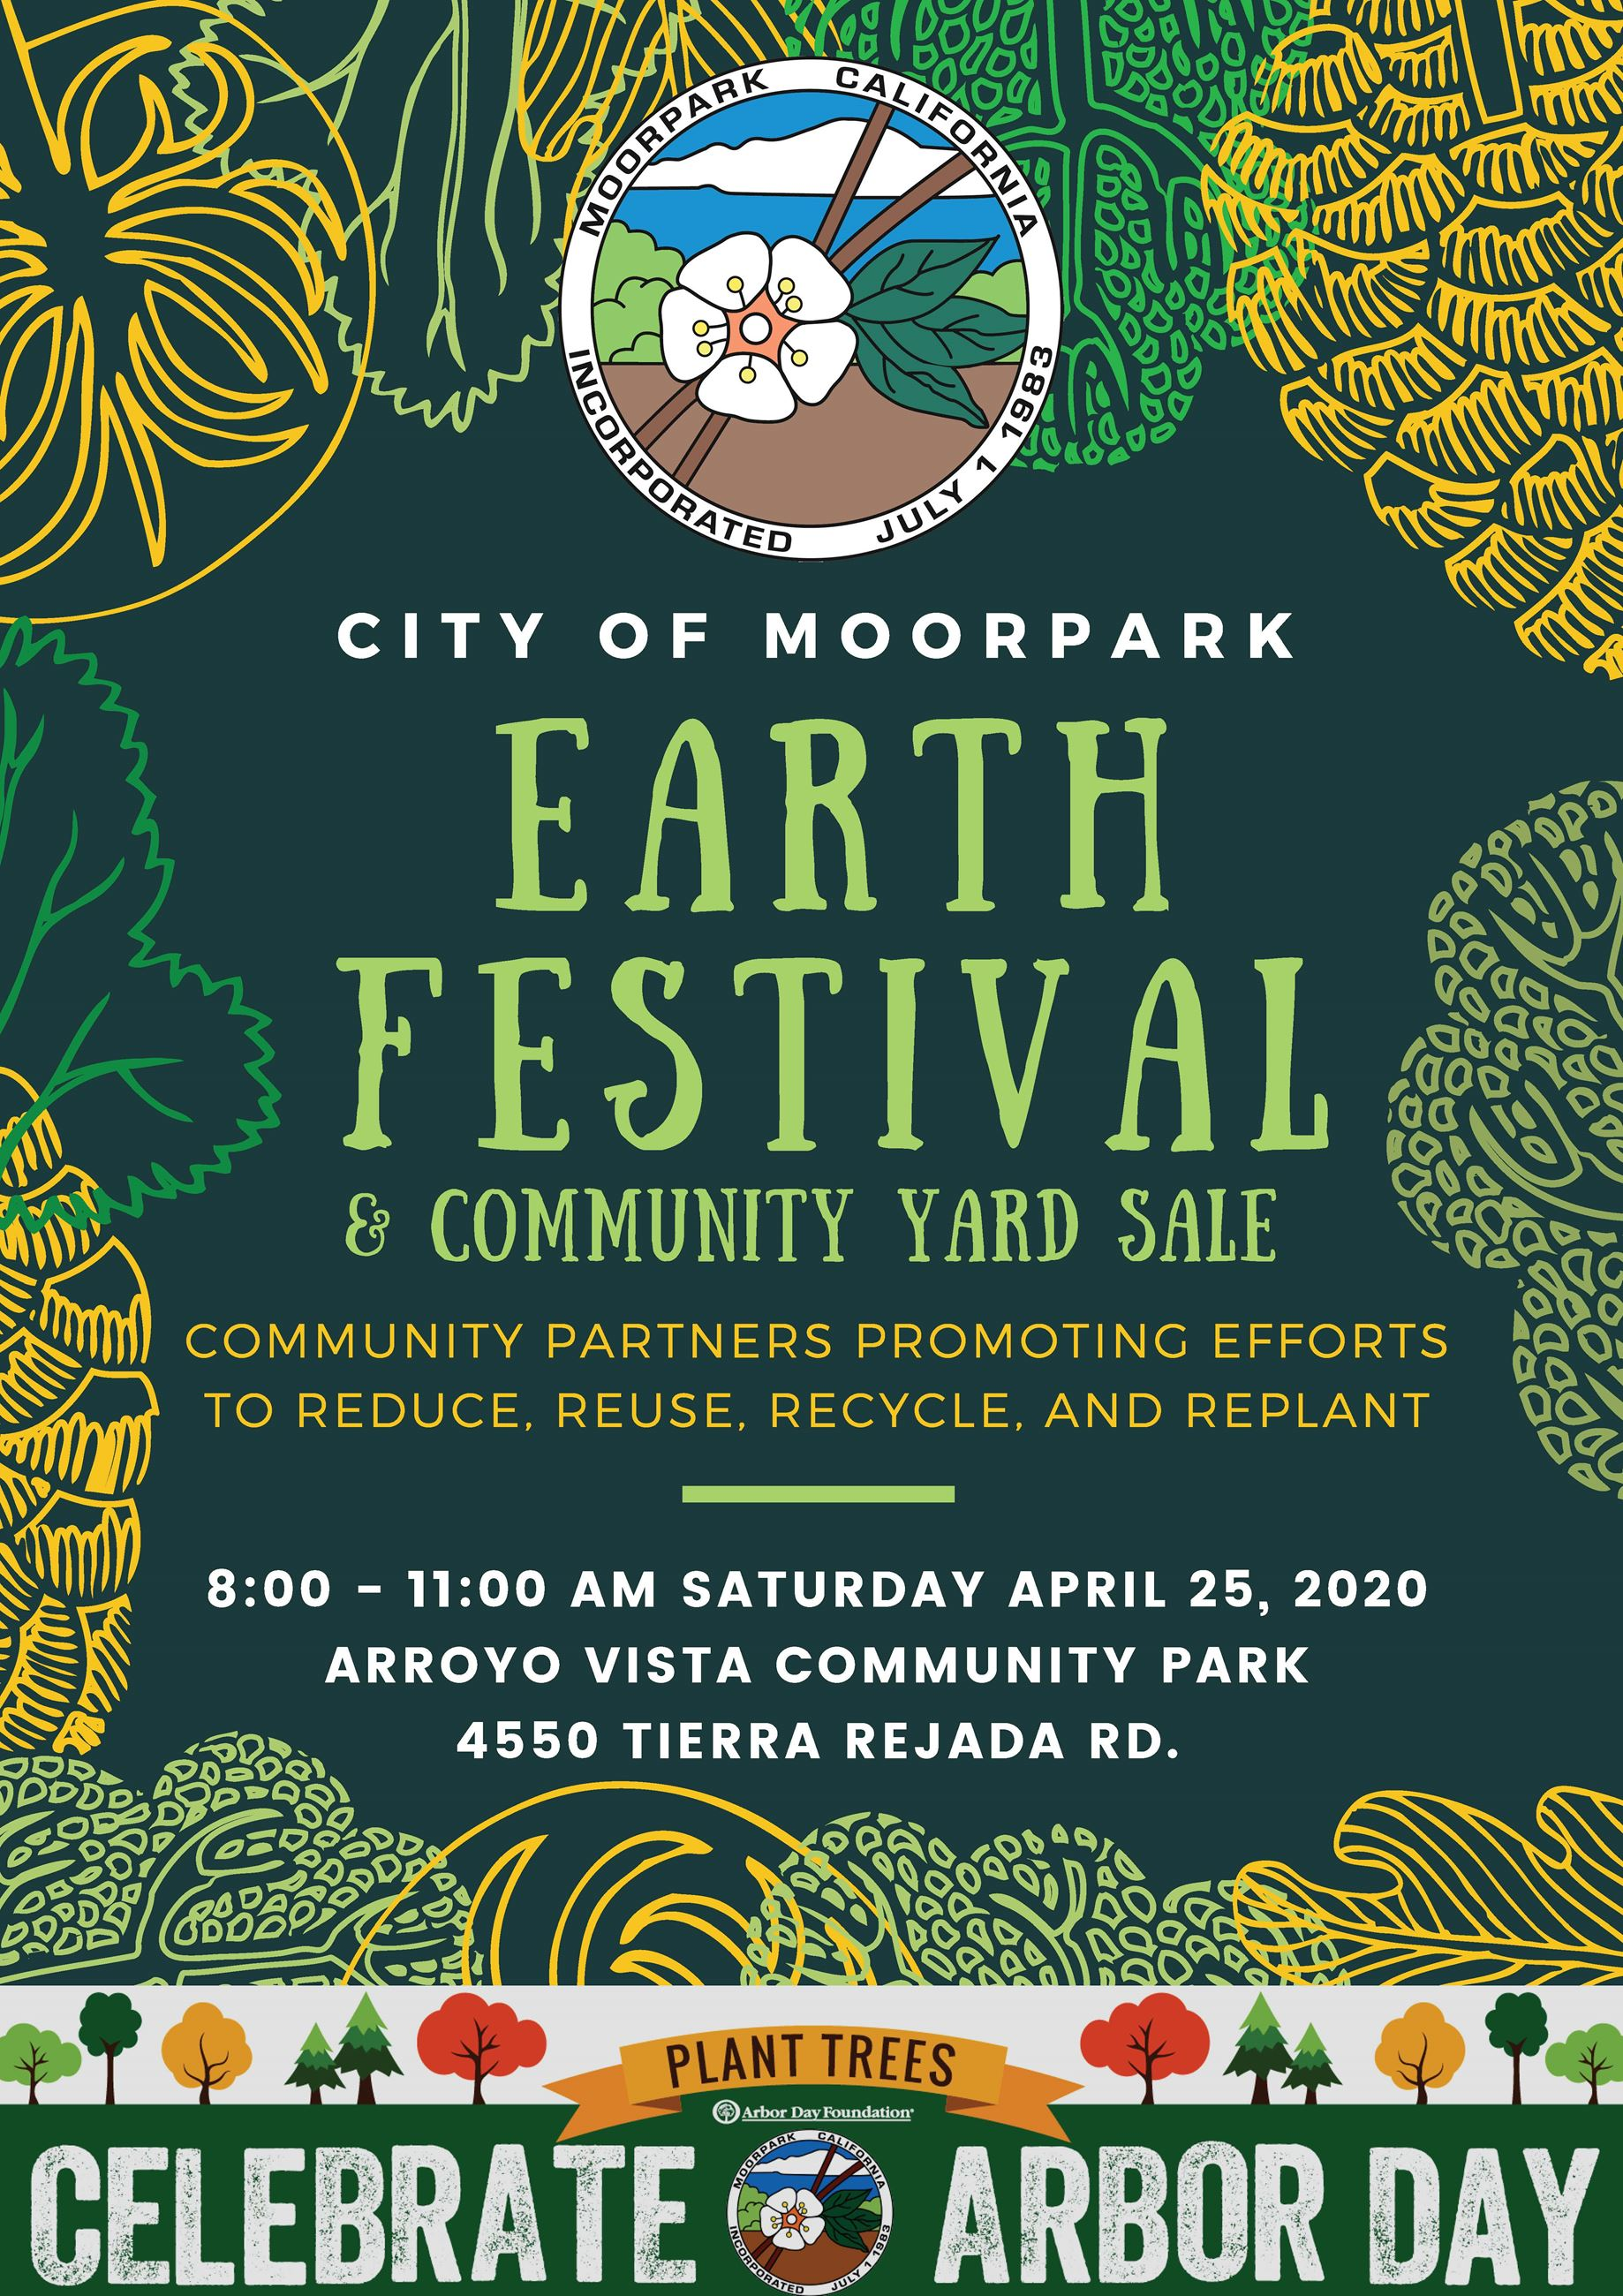 Moorpark Earth Festival Flyer Opens in new window